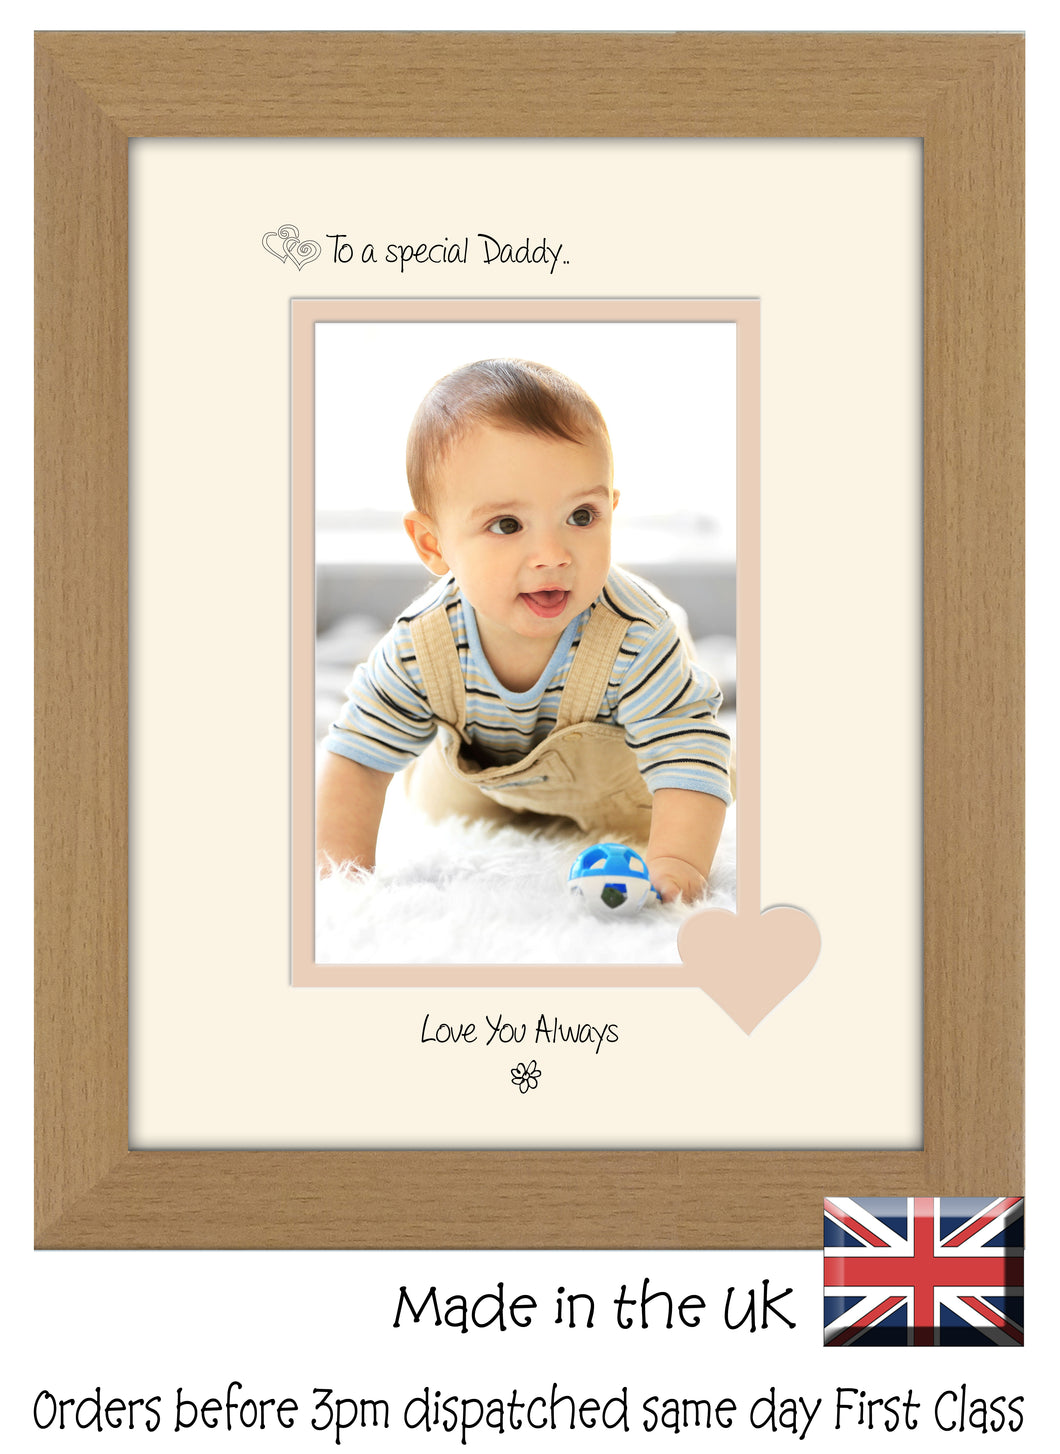 Daddy Photo Frame - To a Special Daddy ... Love you Always Portrait photo frame 6